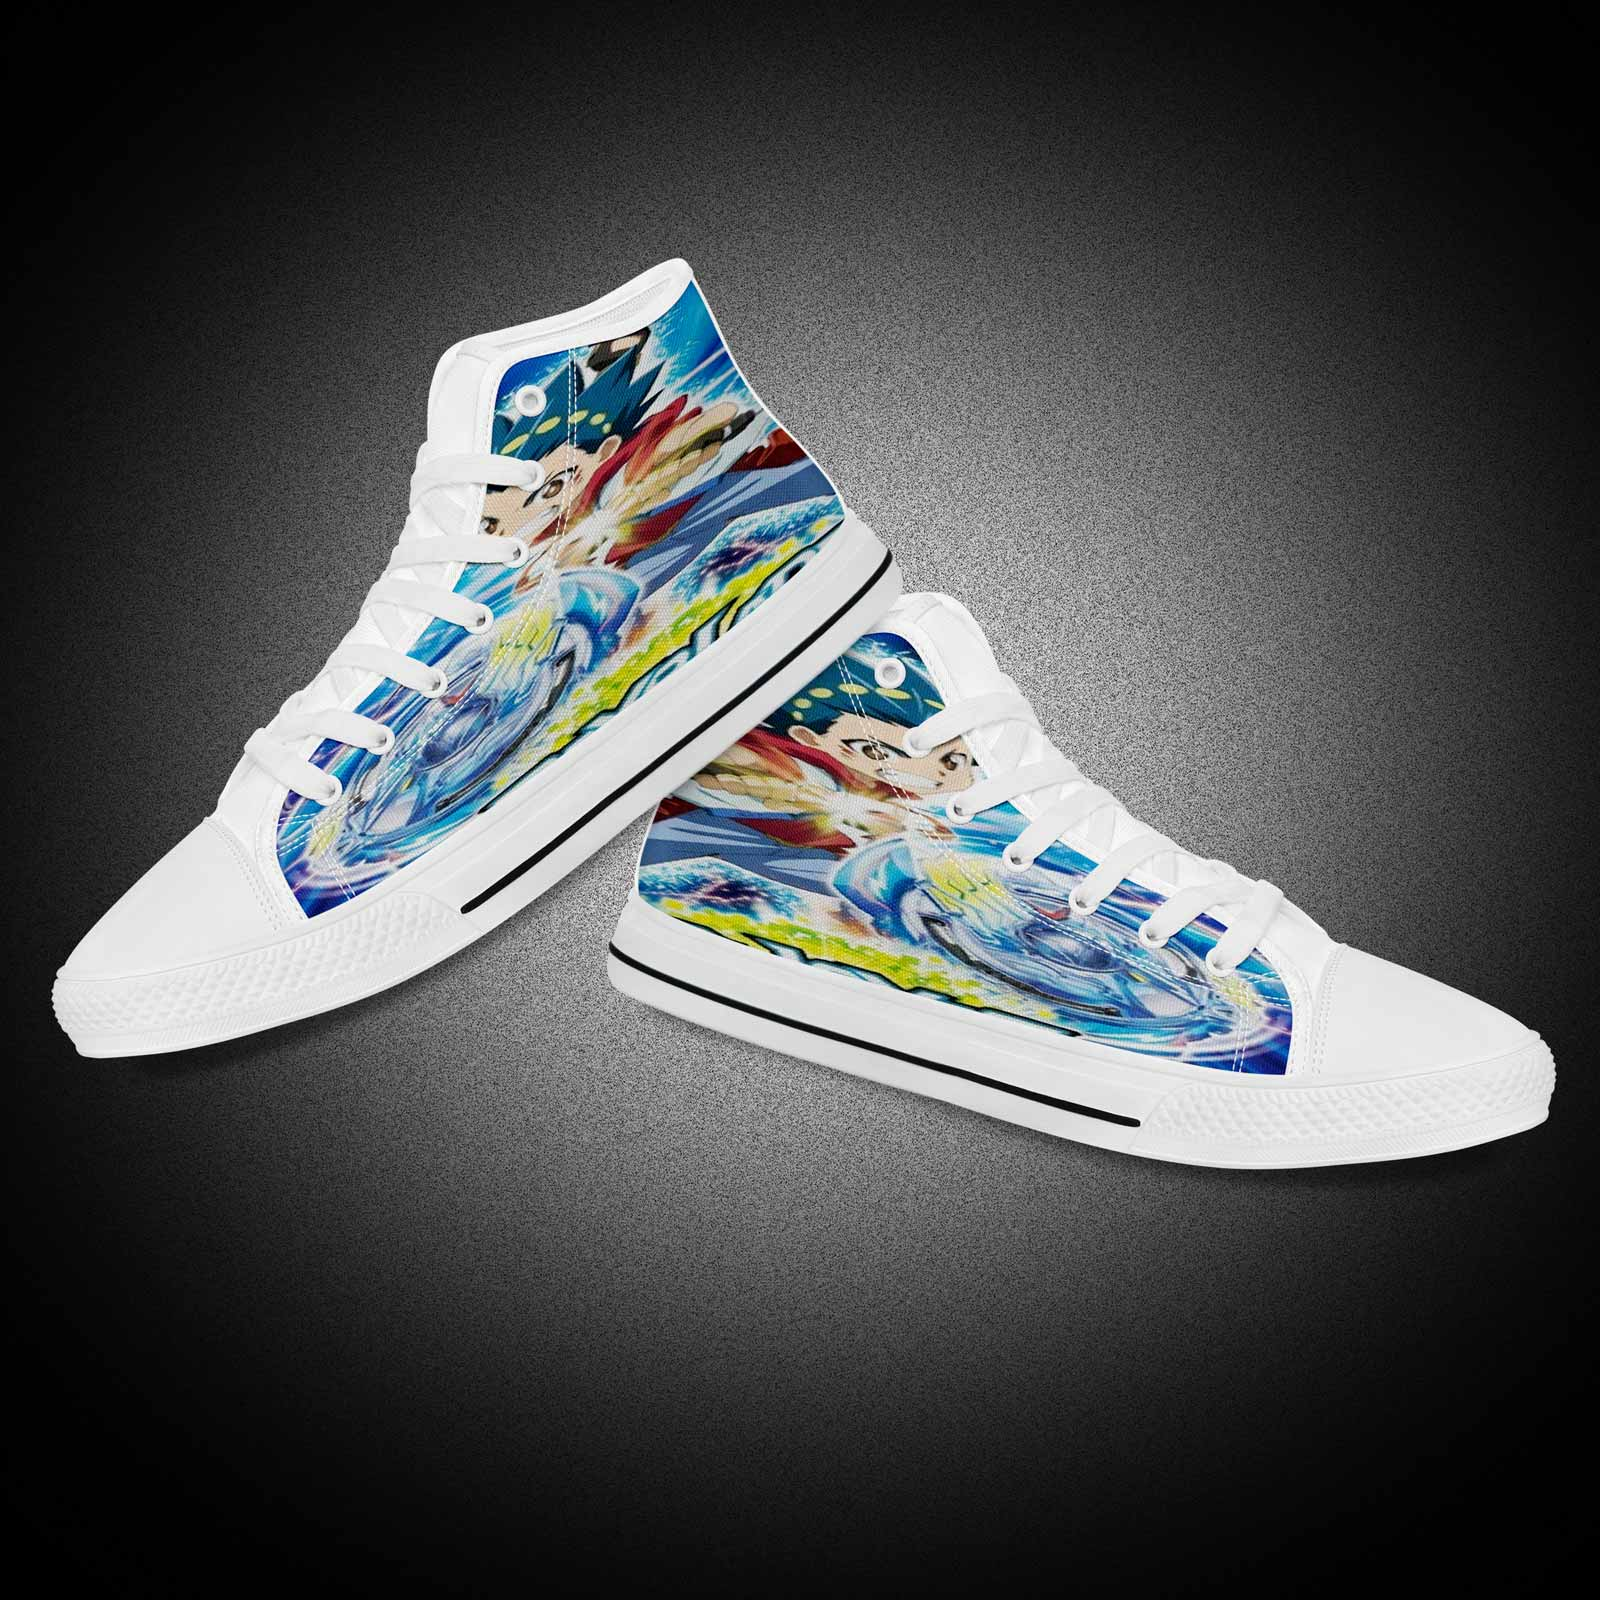 High-Top Men Sports Shoes 2020 Most Fashion Basketball Star Customized Shoes